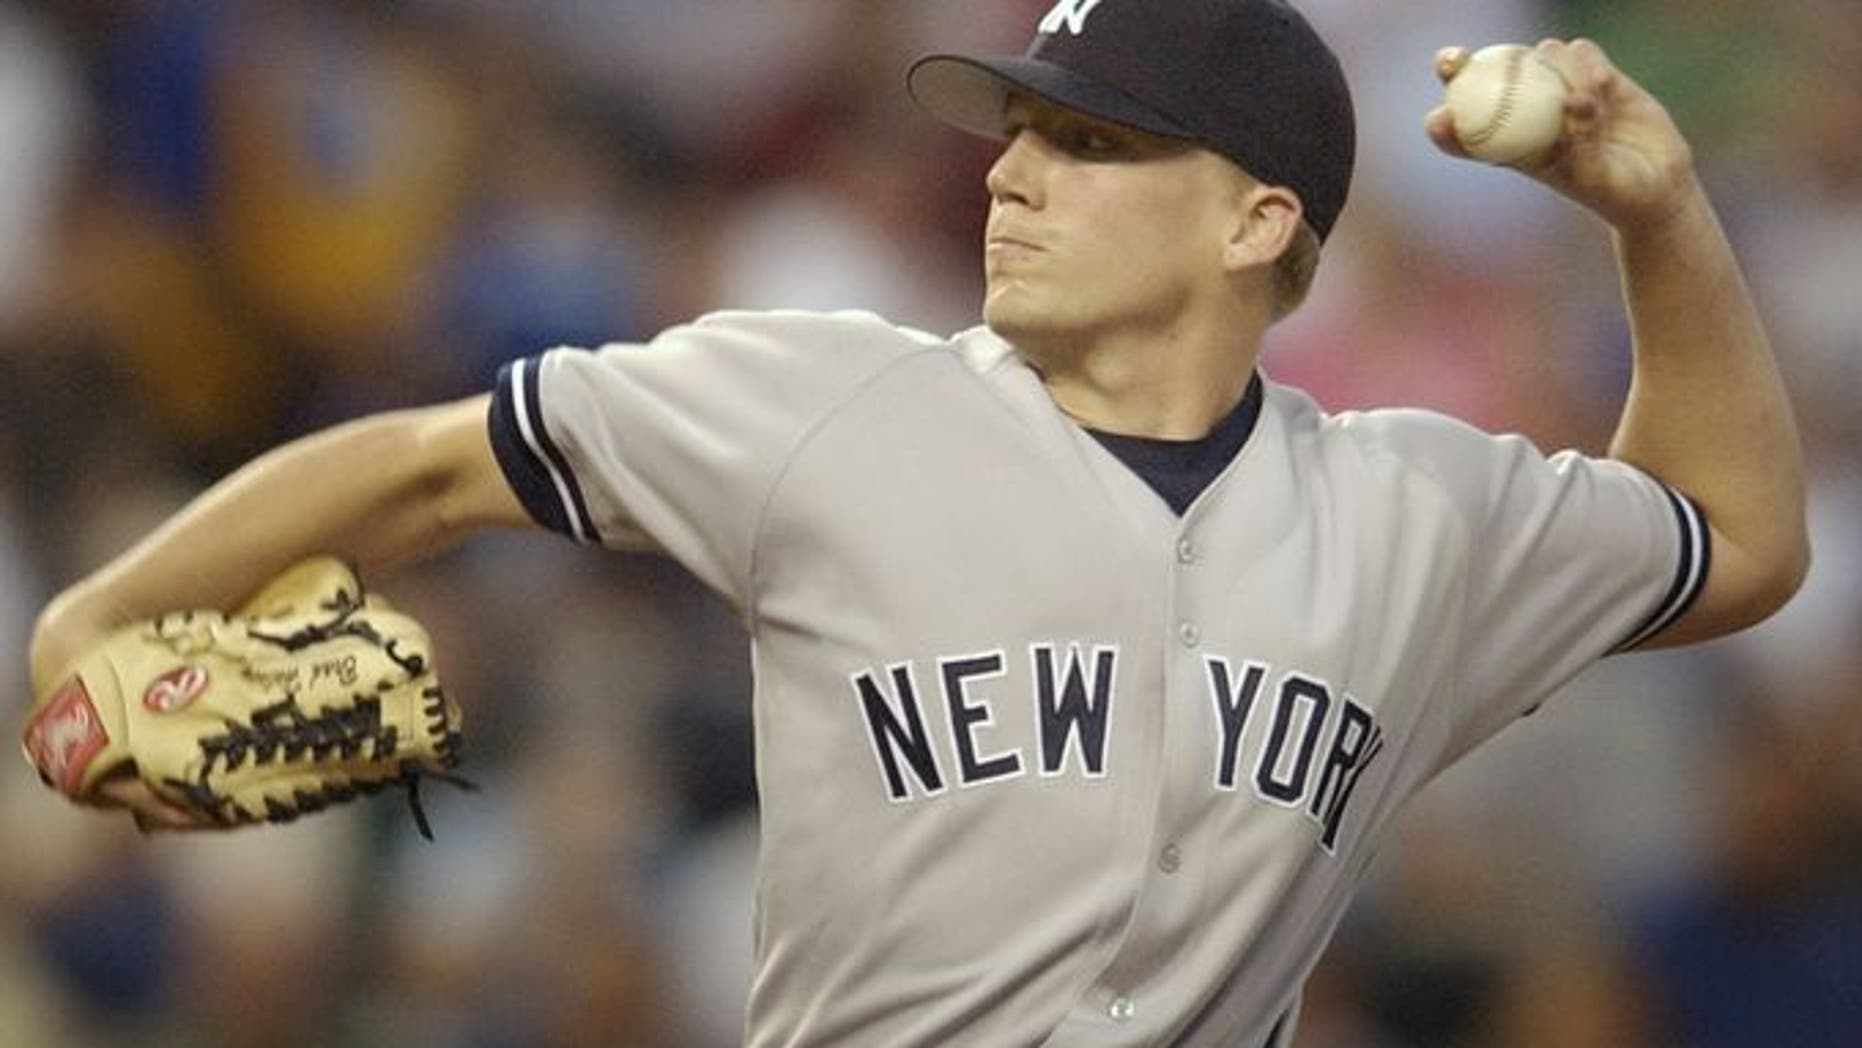 Brad Halsey, 33, was drafted by the Yankees in the eighth round of the 2002 draft. He made his major league debut with the team in 2004. (AP)